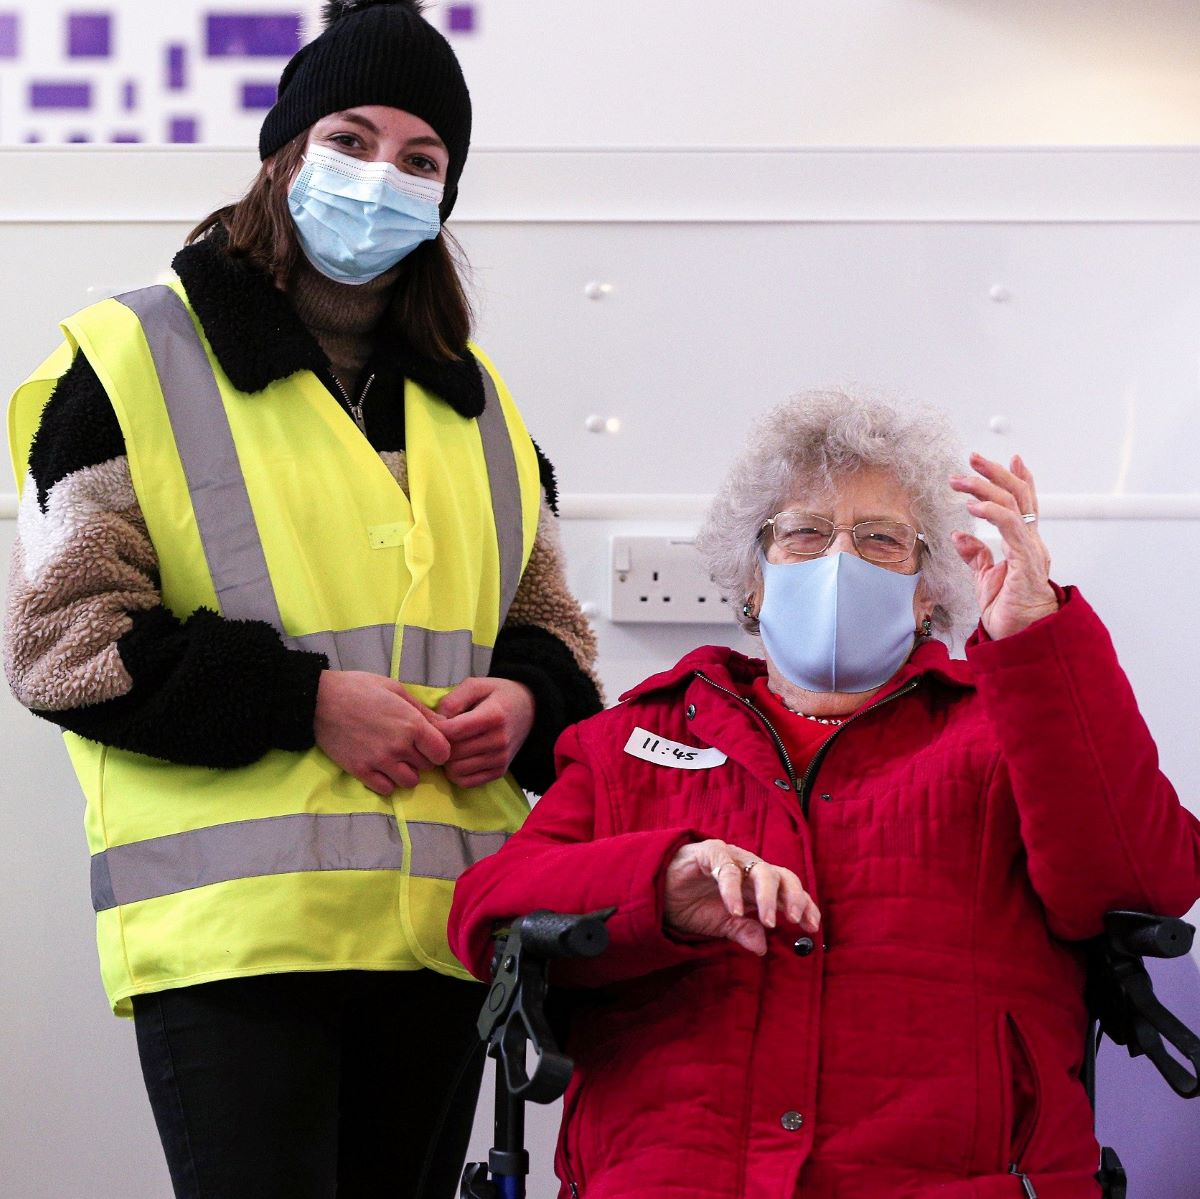 Southampton community charity appeals for more volunteers